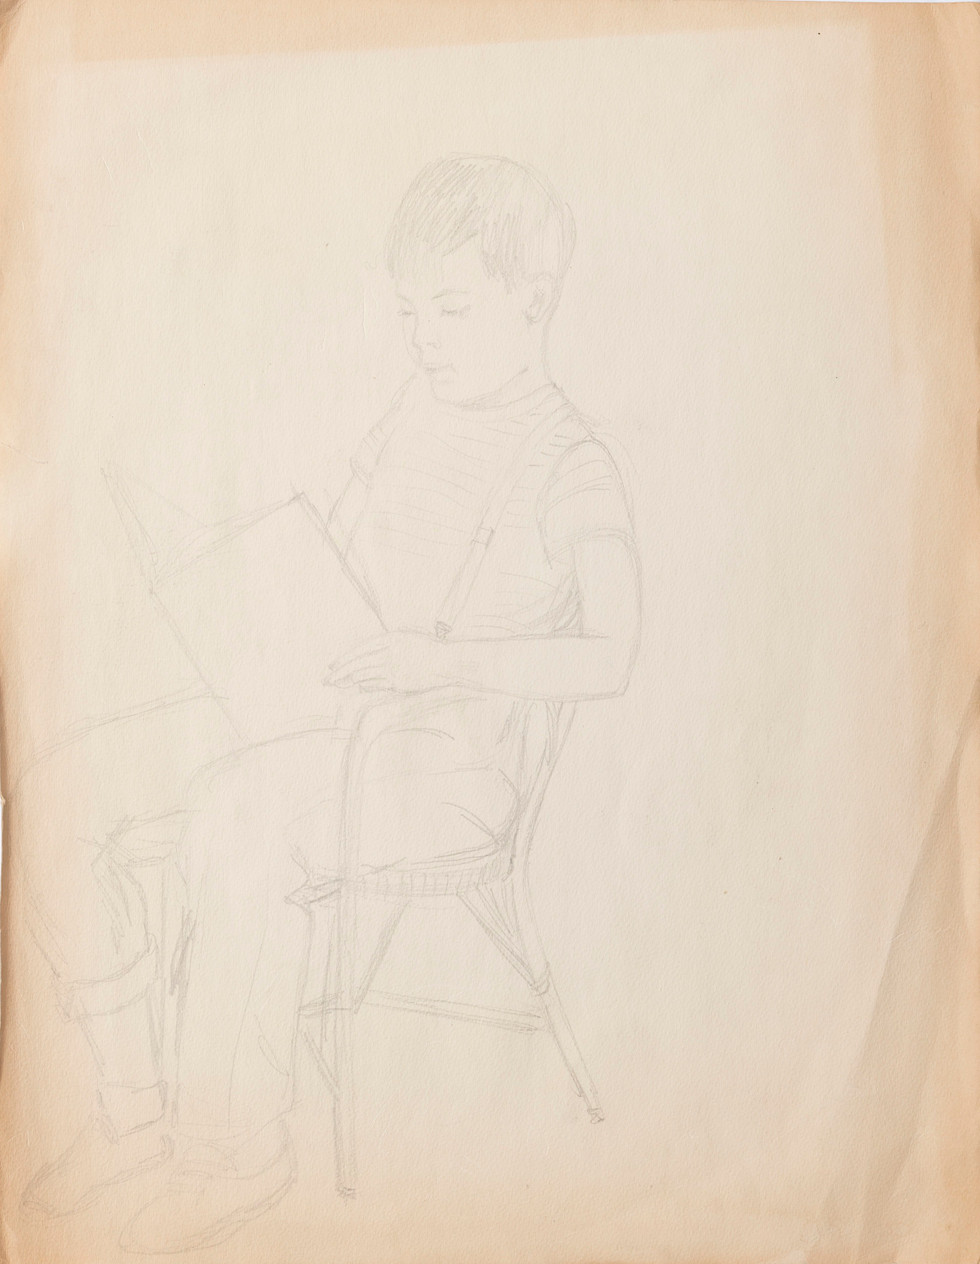 Untitled sketch - boy reading in chair and four women in dresses (front)